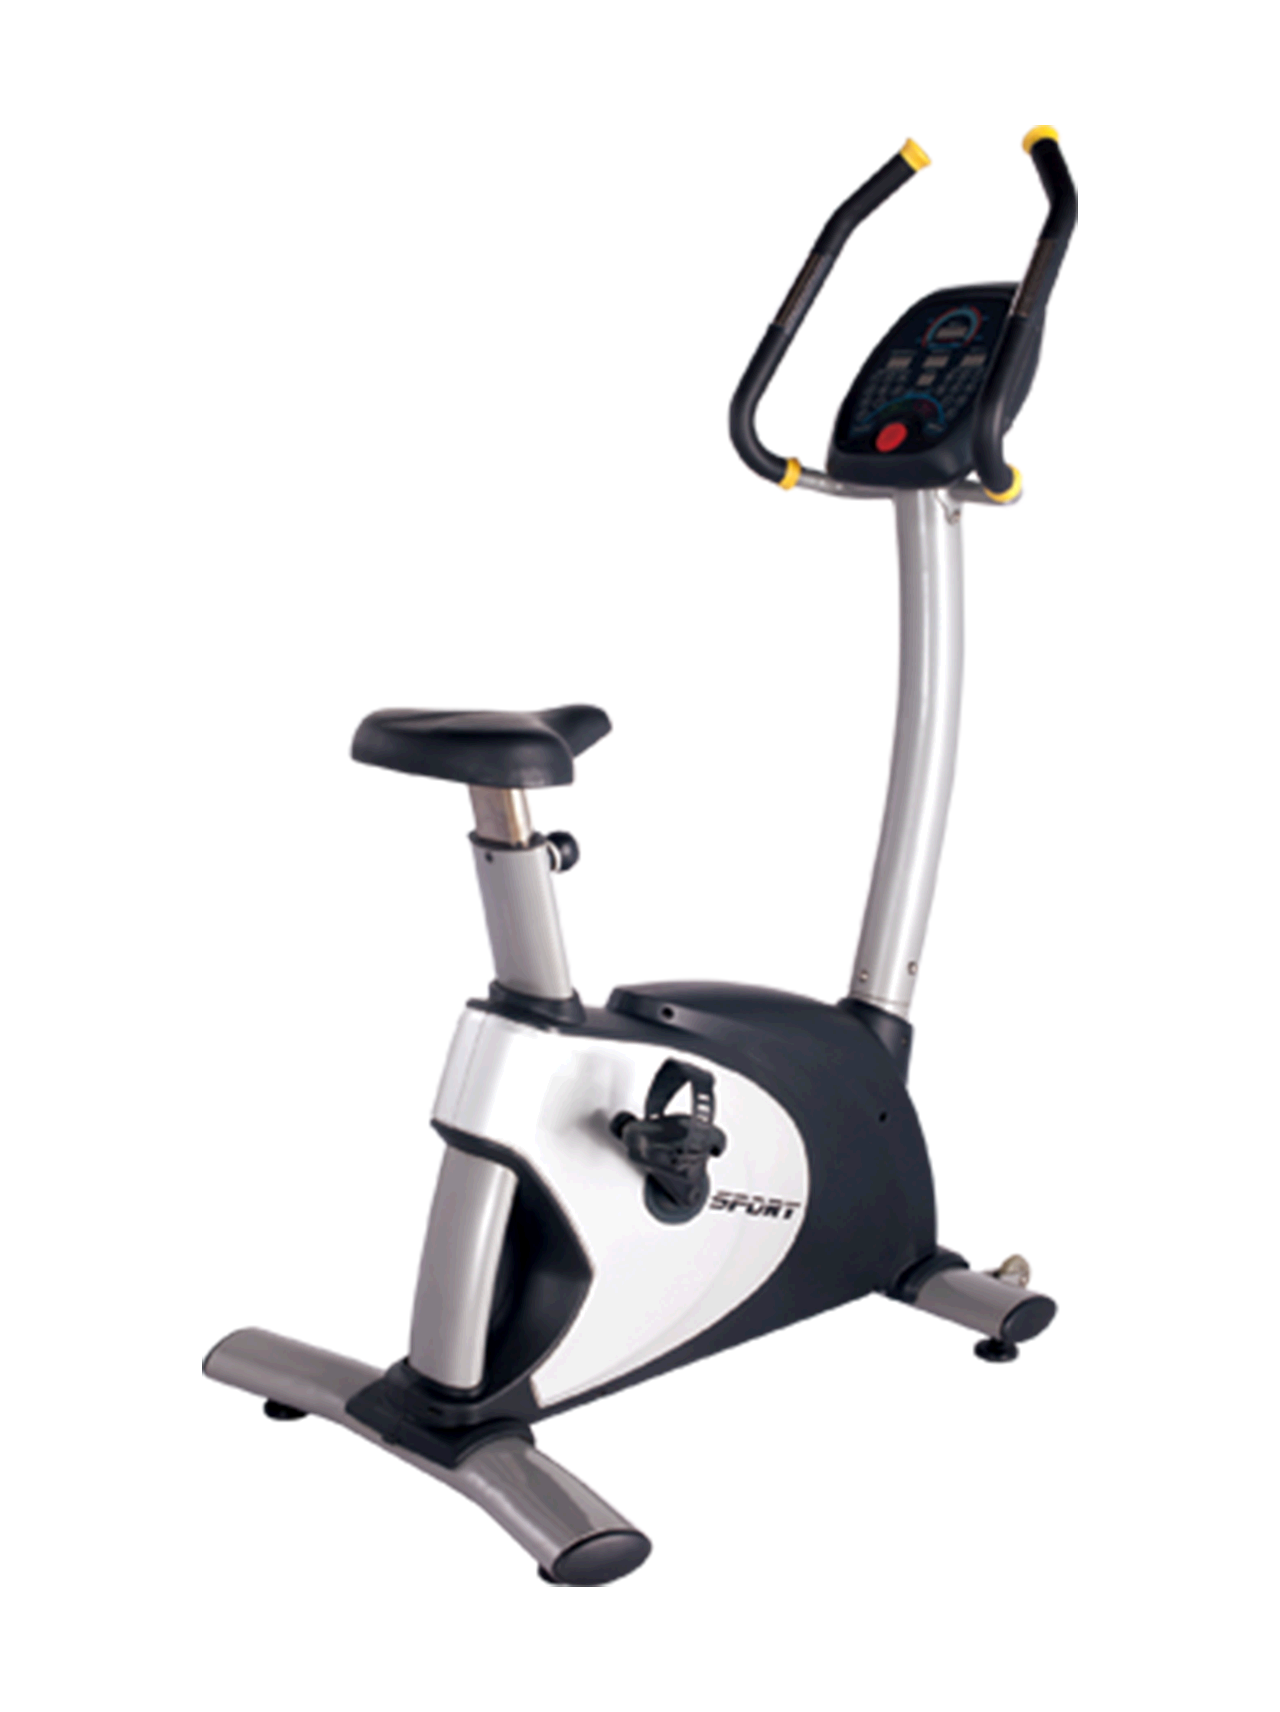 Exercise Bike Transparent PNG Image